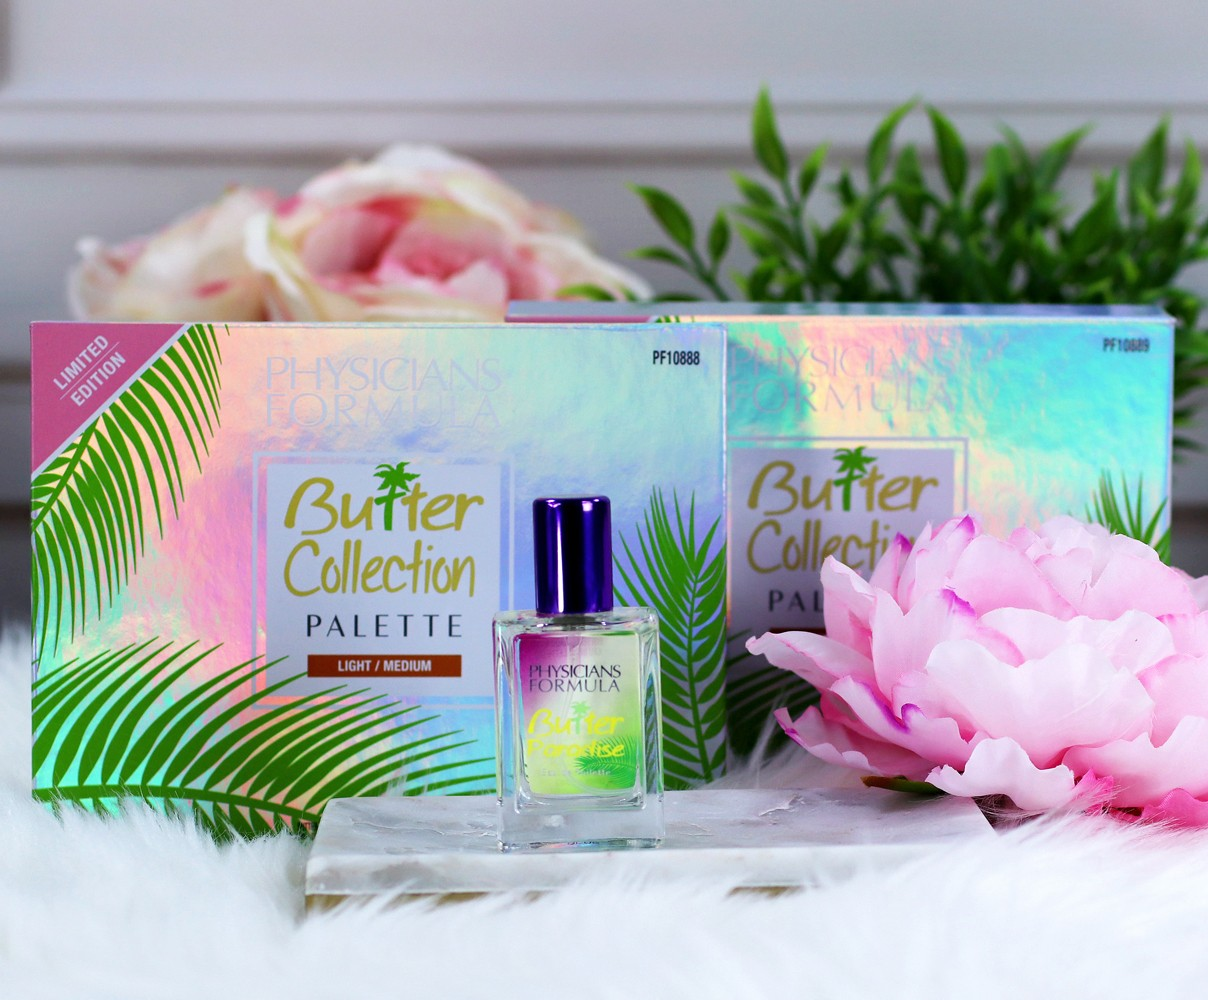 Physicians Formula Butter Collection Palette Review and Swatches by Popular Los Angeles Cruelty Free Beauty Blogger, My Beauty Bunny